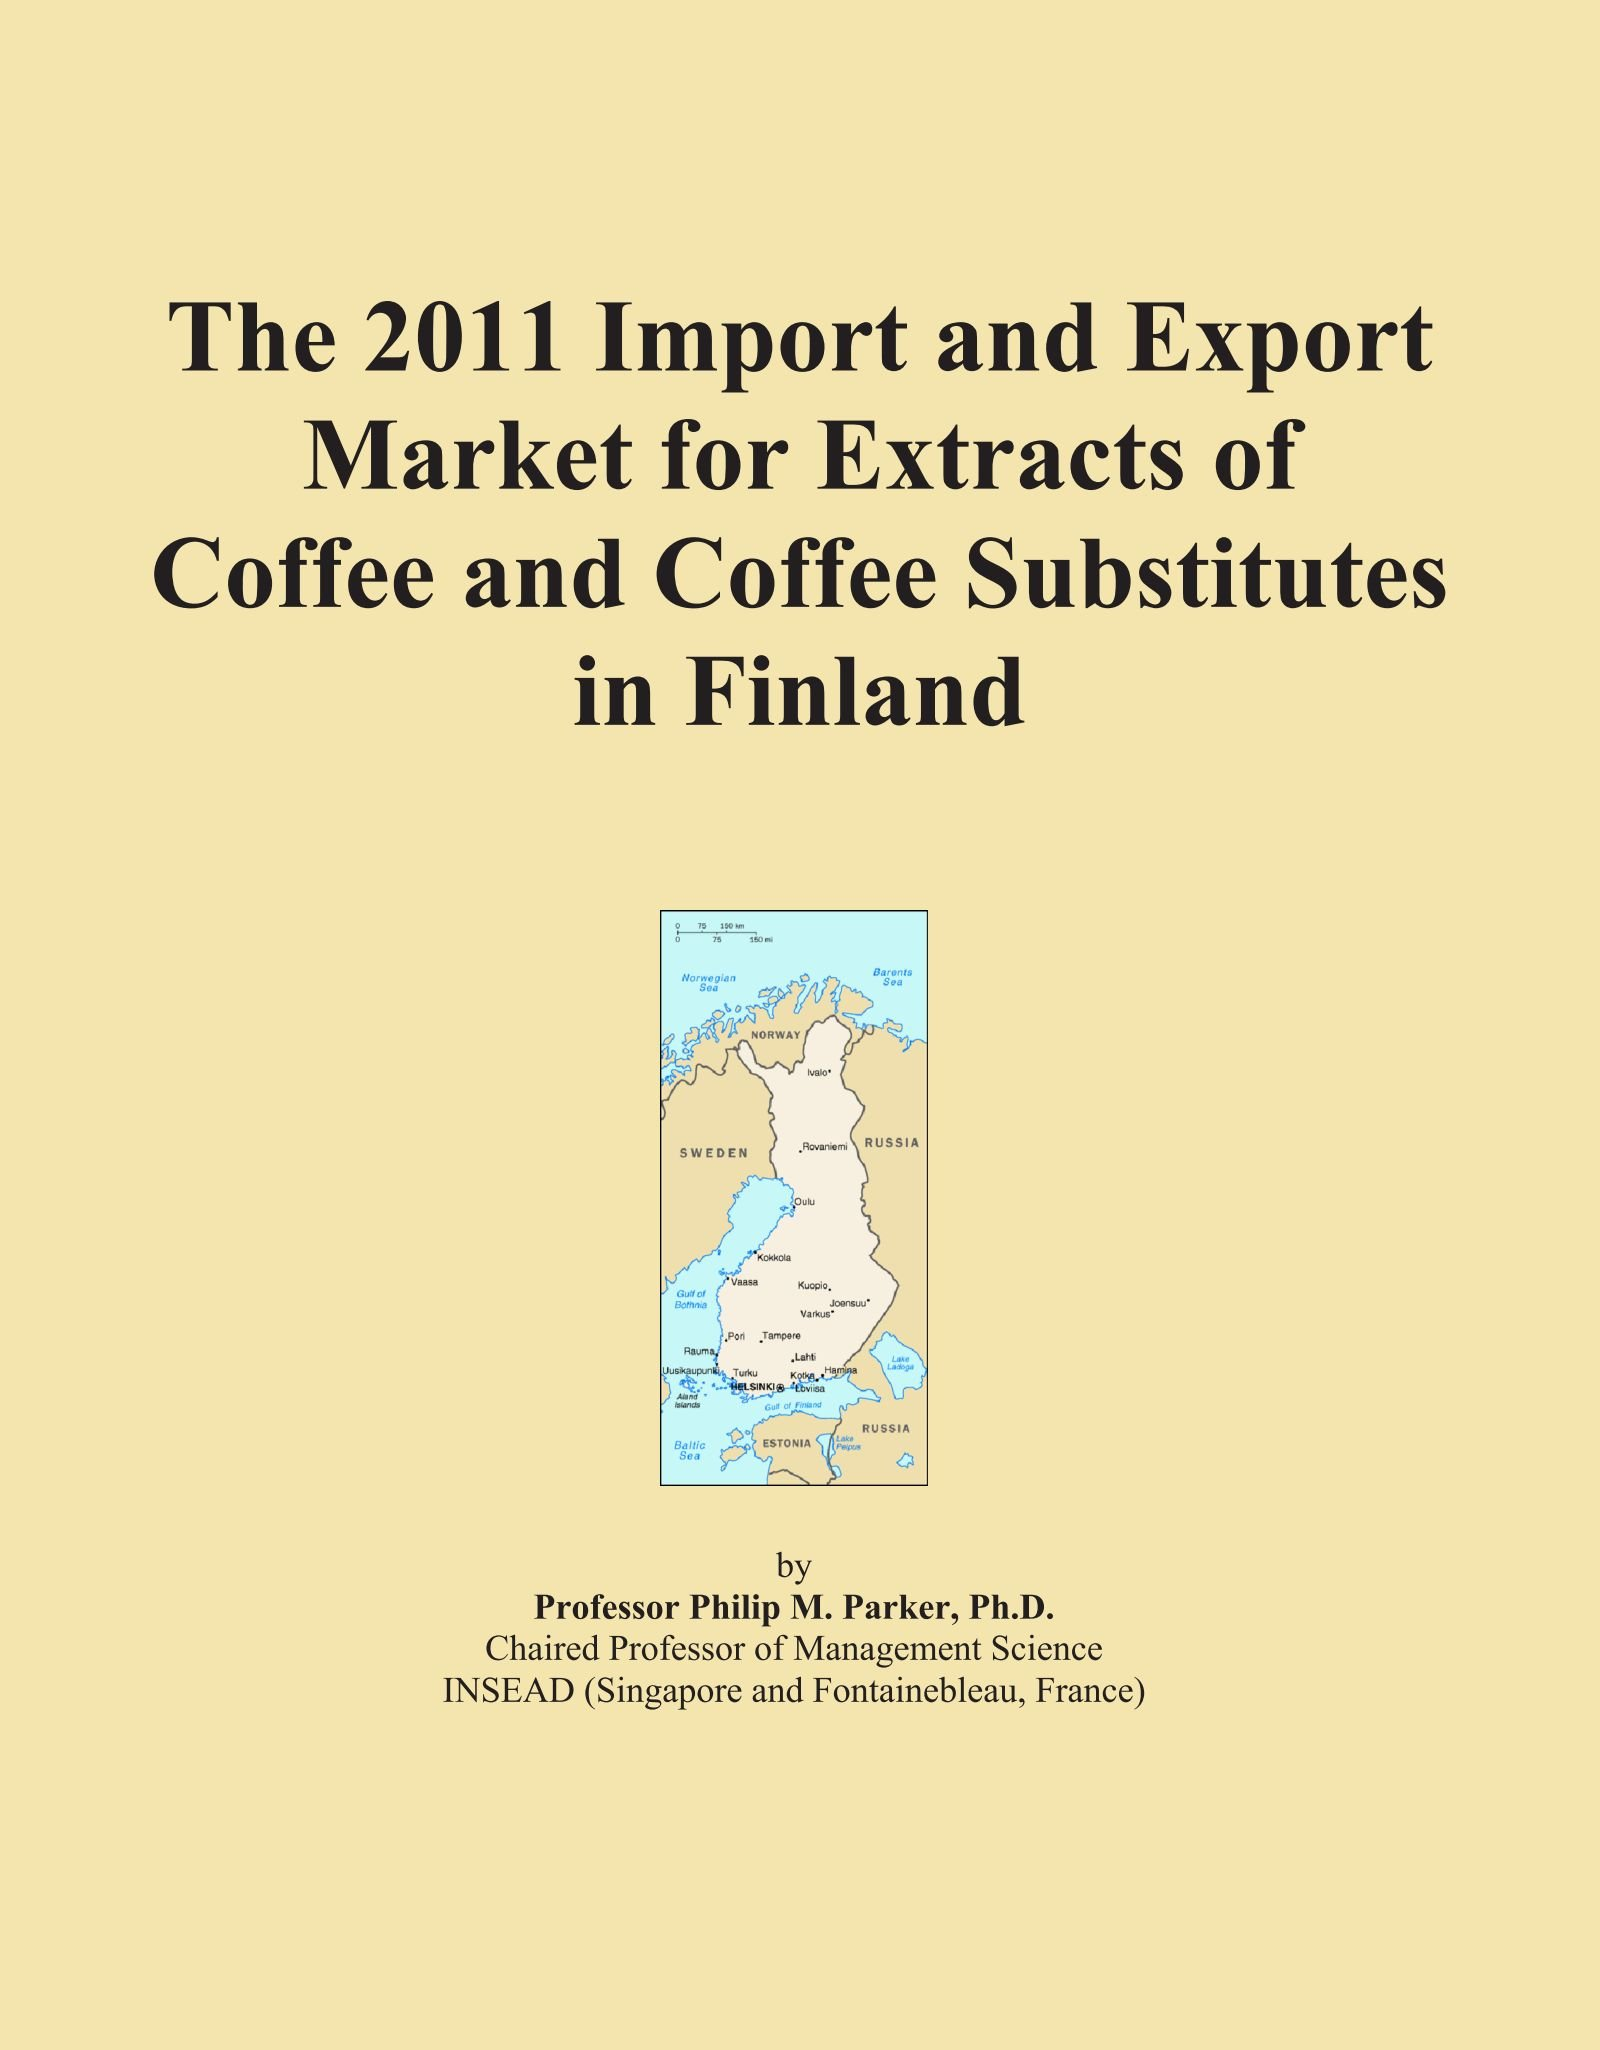 The 2011 Import and Export Market for Extracts of Coffee and Coffee Substitutes in Finland pdf